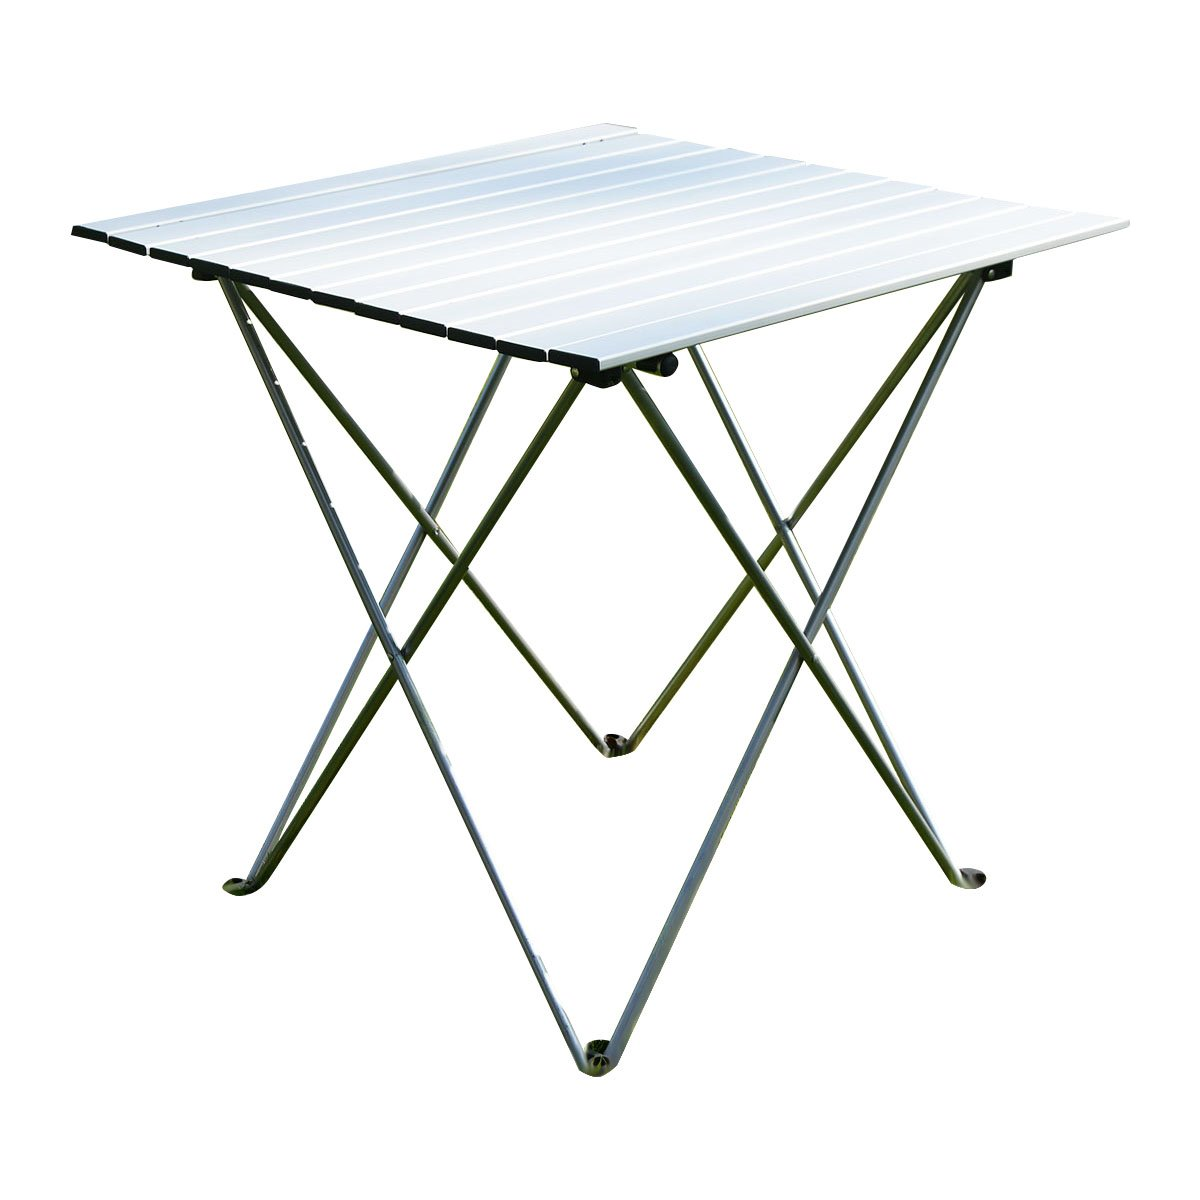 Giantex Aluminum Roll up Table Folding Camping Outdoor Indoor Picnic w/Bag Heavy Duty OP2789